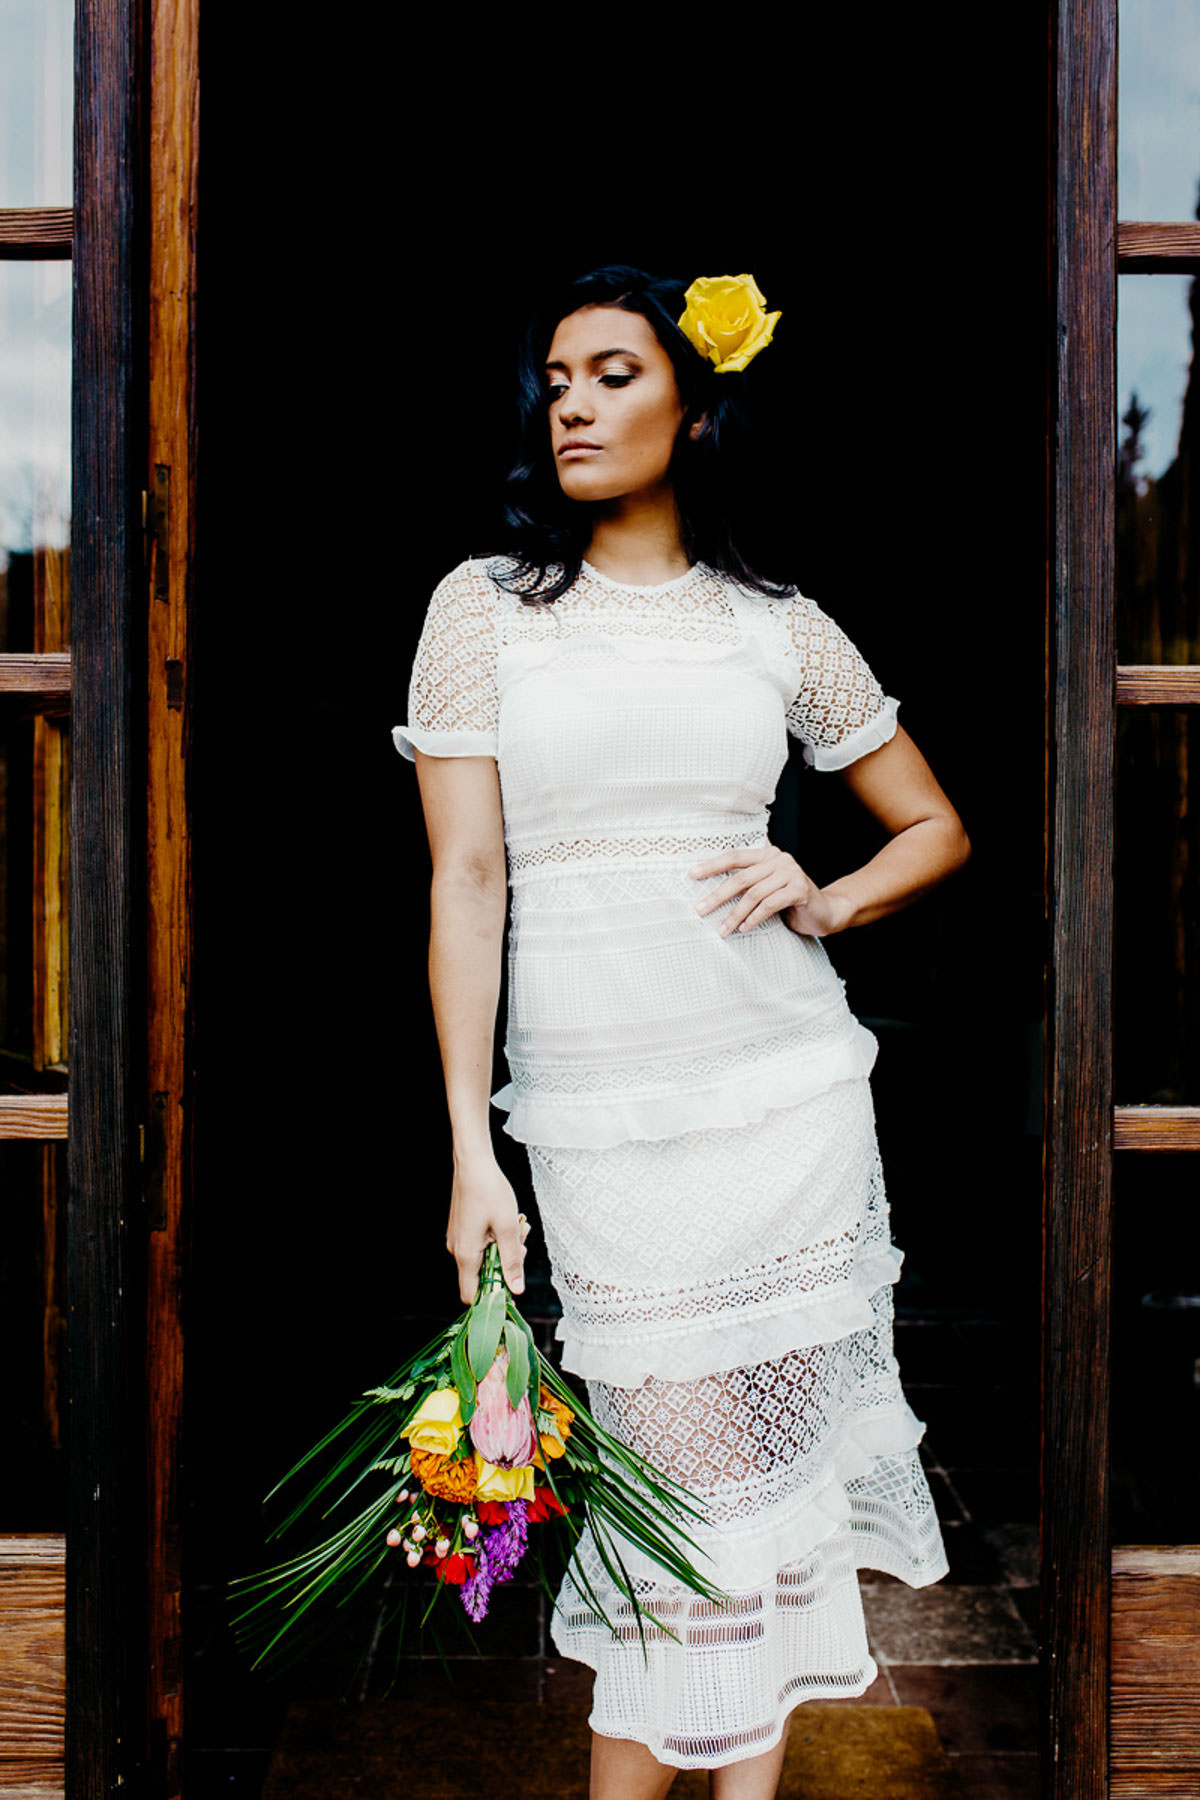 alternative bridal, bold makeup, bridal editorial, bridal inspiration, bridal make up, bridal style, bright wedidg, coloured wedding dresses, colourful bride, colourful makeup ideas, colourful wedding photography, colourpop make up, cuba wedding, cuban bride, edgy bride, floral crown, havana bride, havana wedding, Jo Kemp photography, Mr and Mrs Unique, sassy bride, summer bride, teresa snowball, wedding inspiration